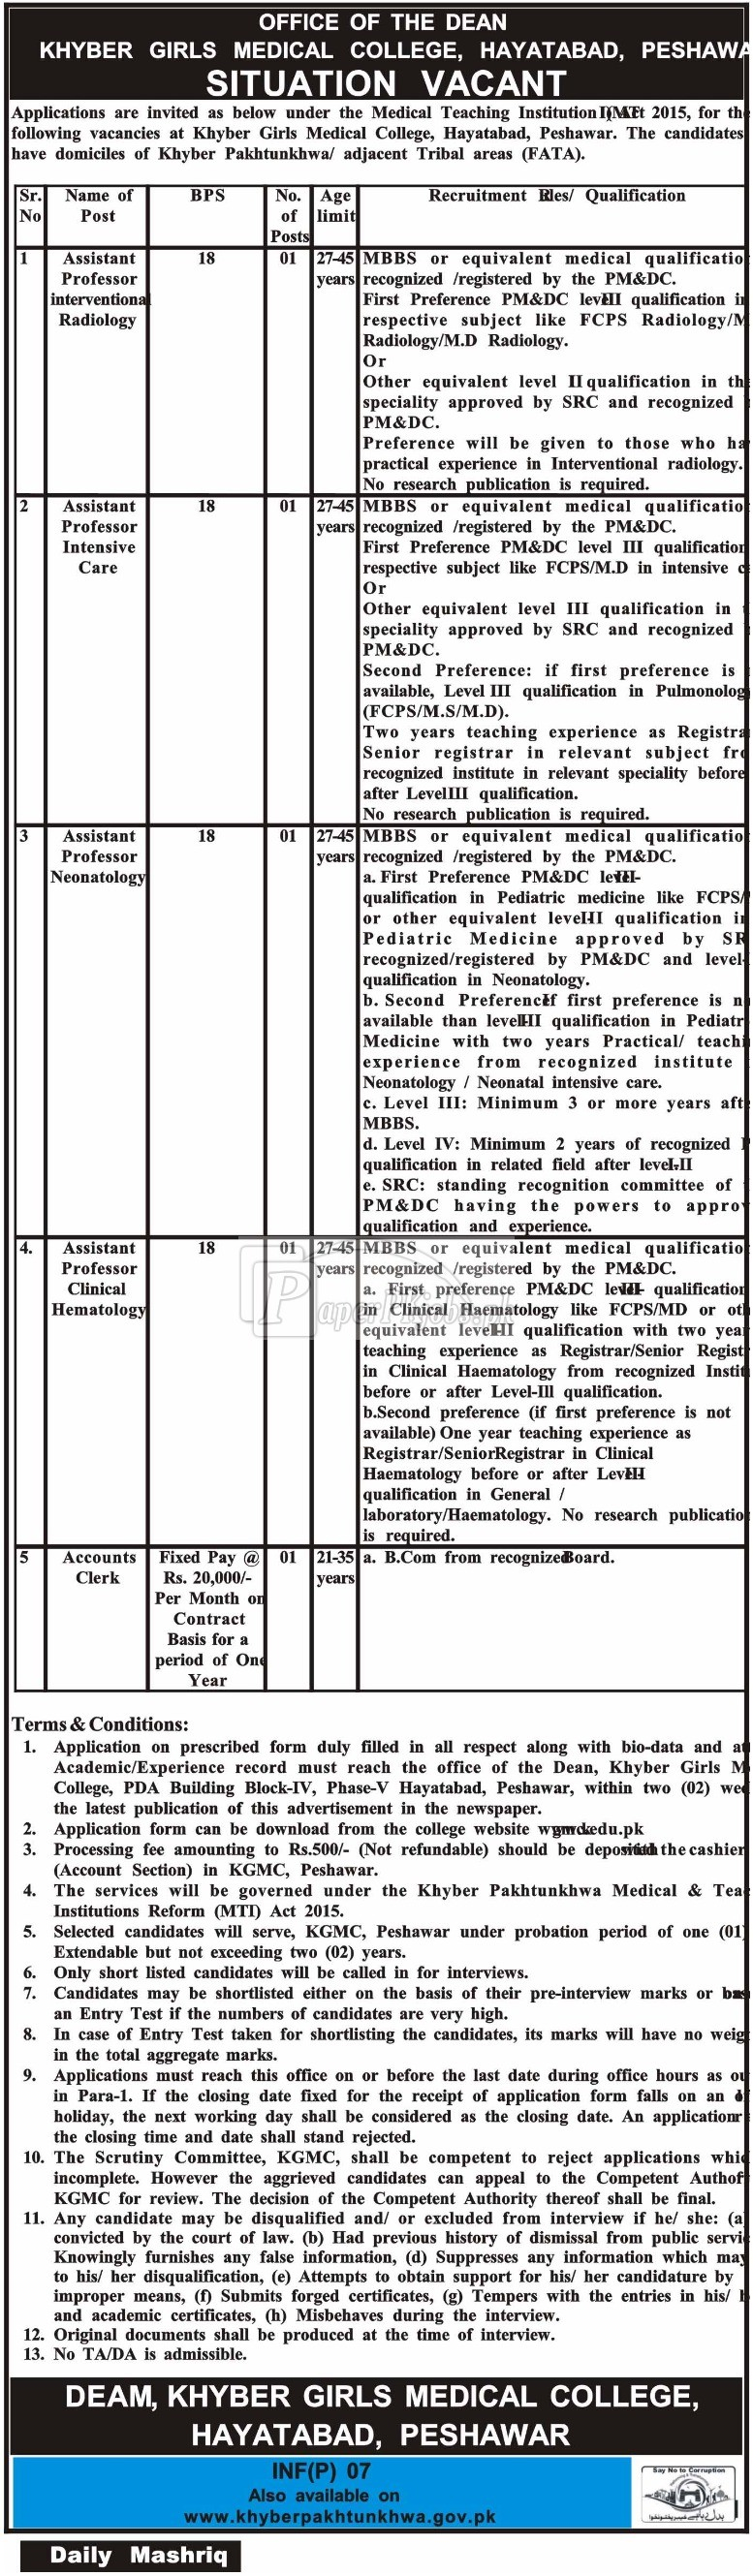 Khyber Girls Medical College Hayatabad Peshawar Jobs 2018